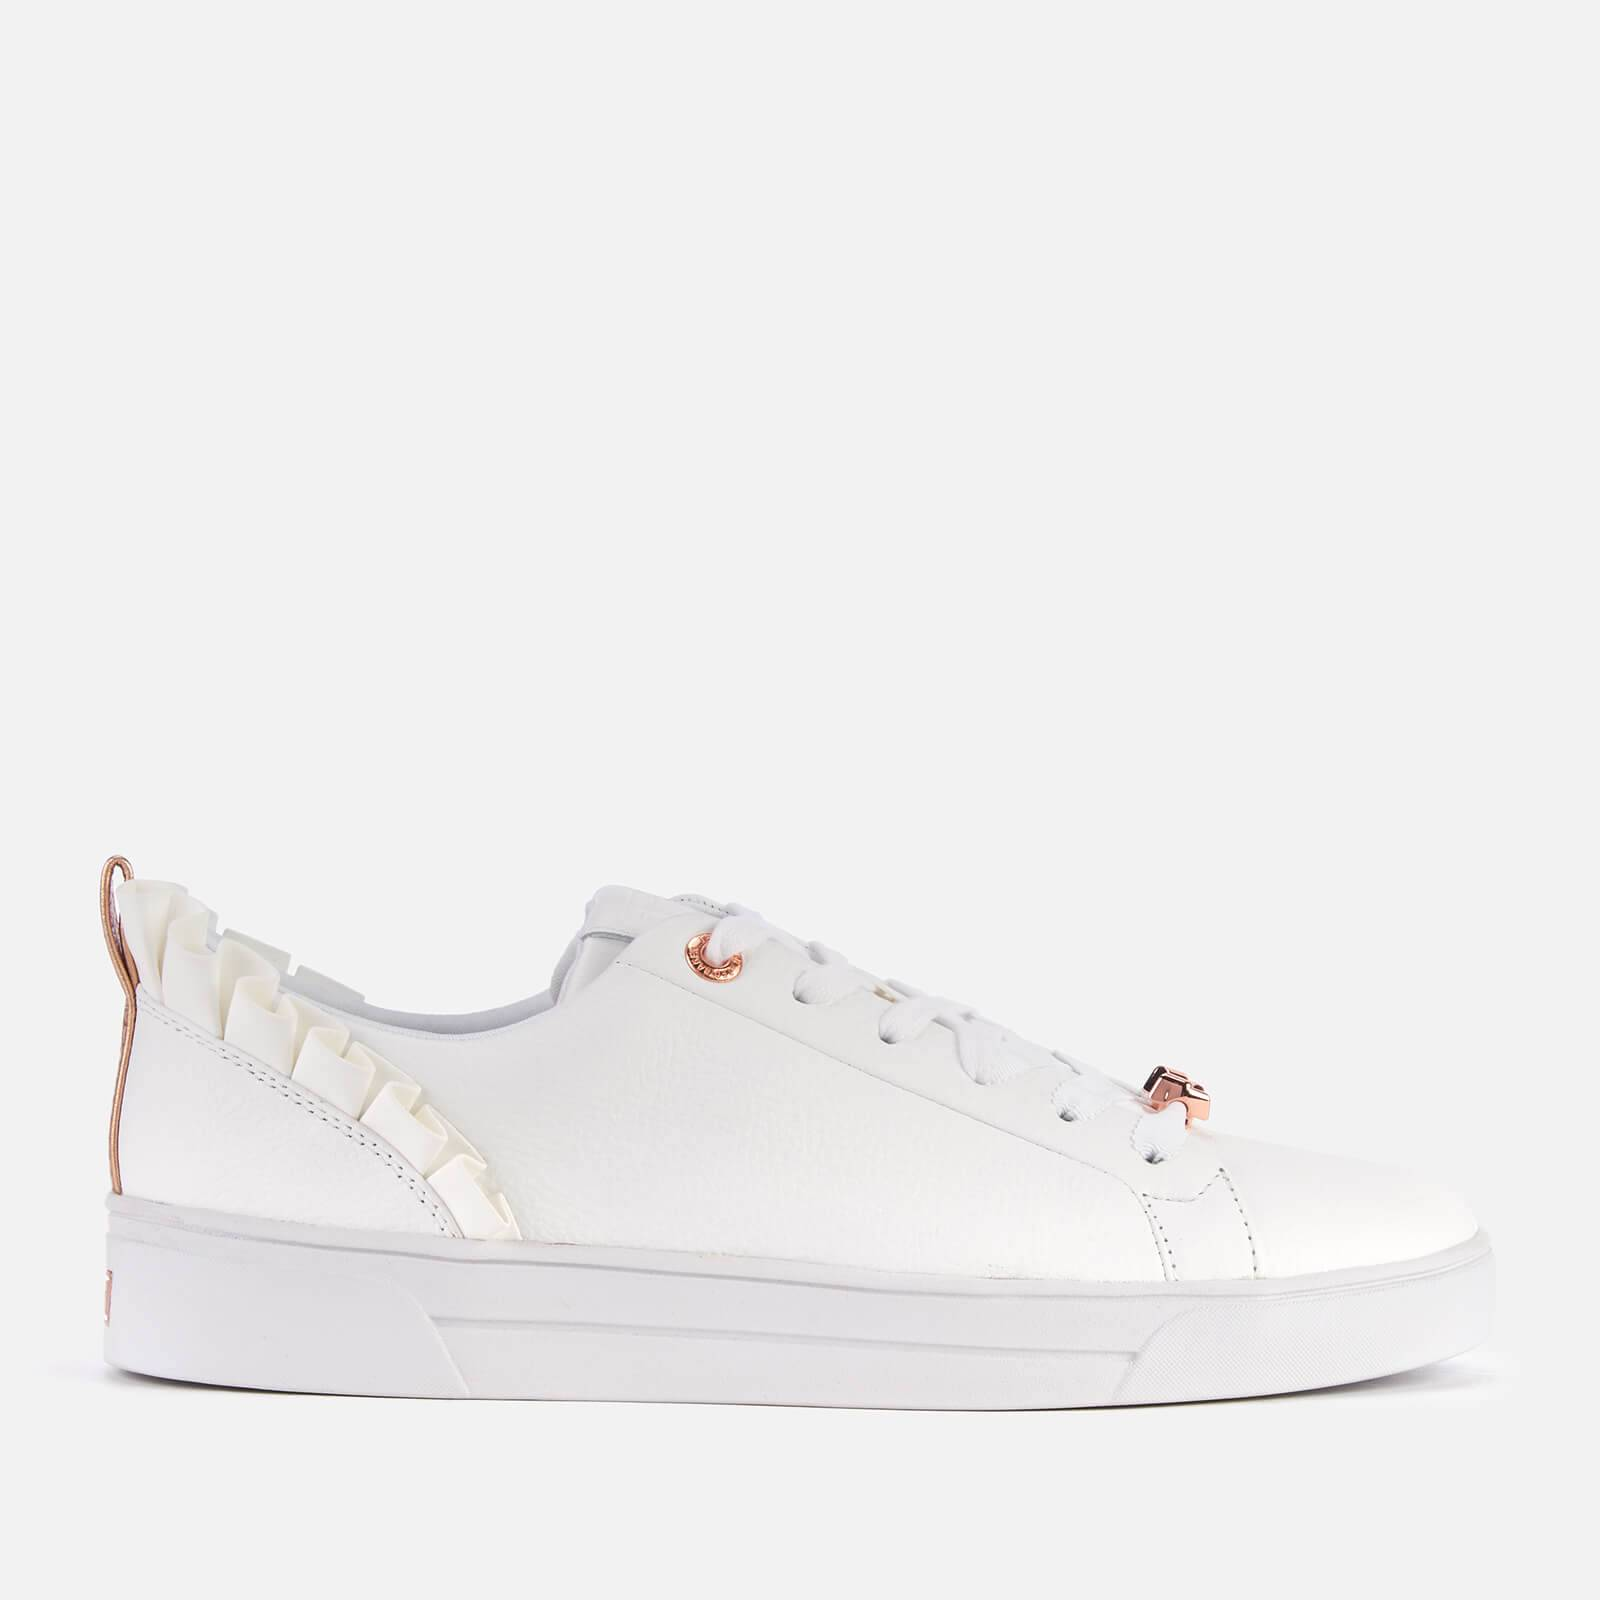 Ted Baker Women's Astrina Leather Frill Low Top Trainers - White - UK 8 - White